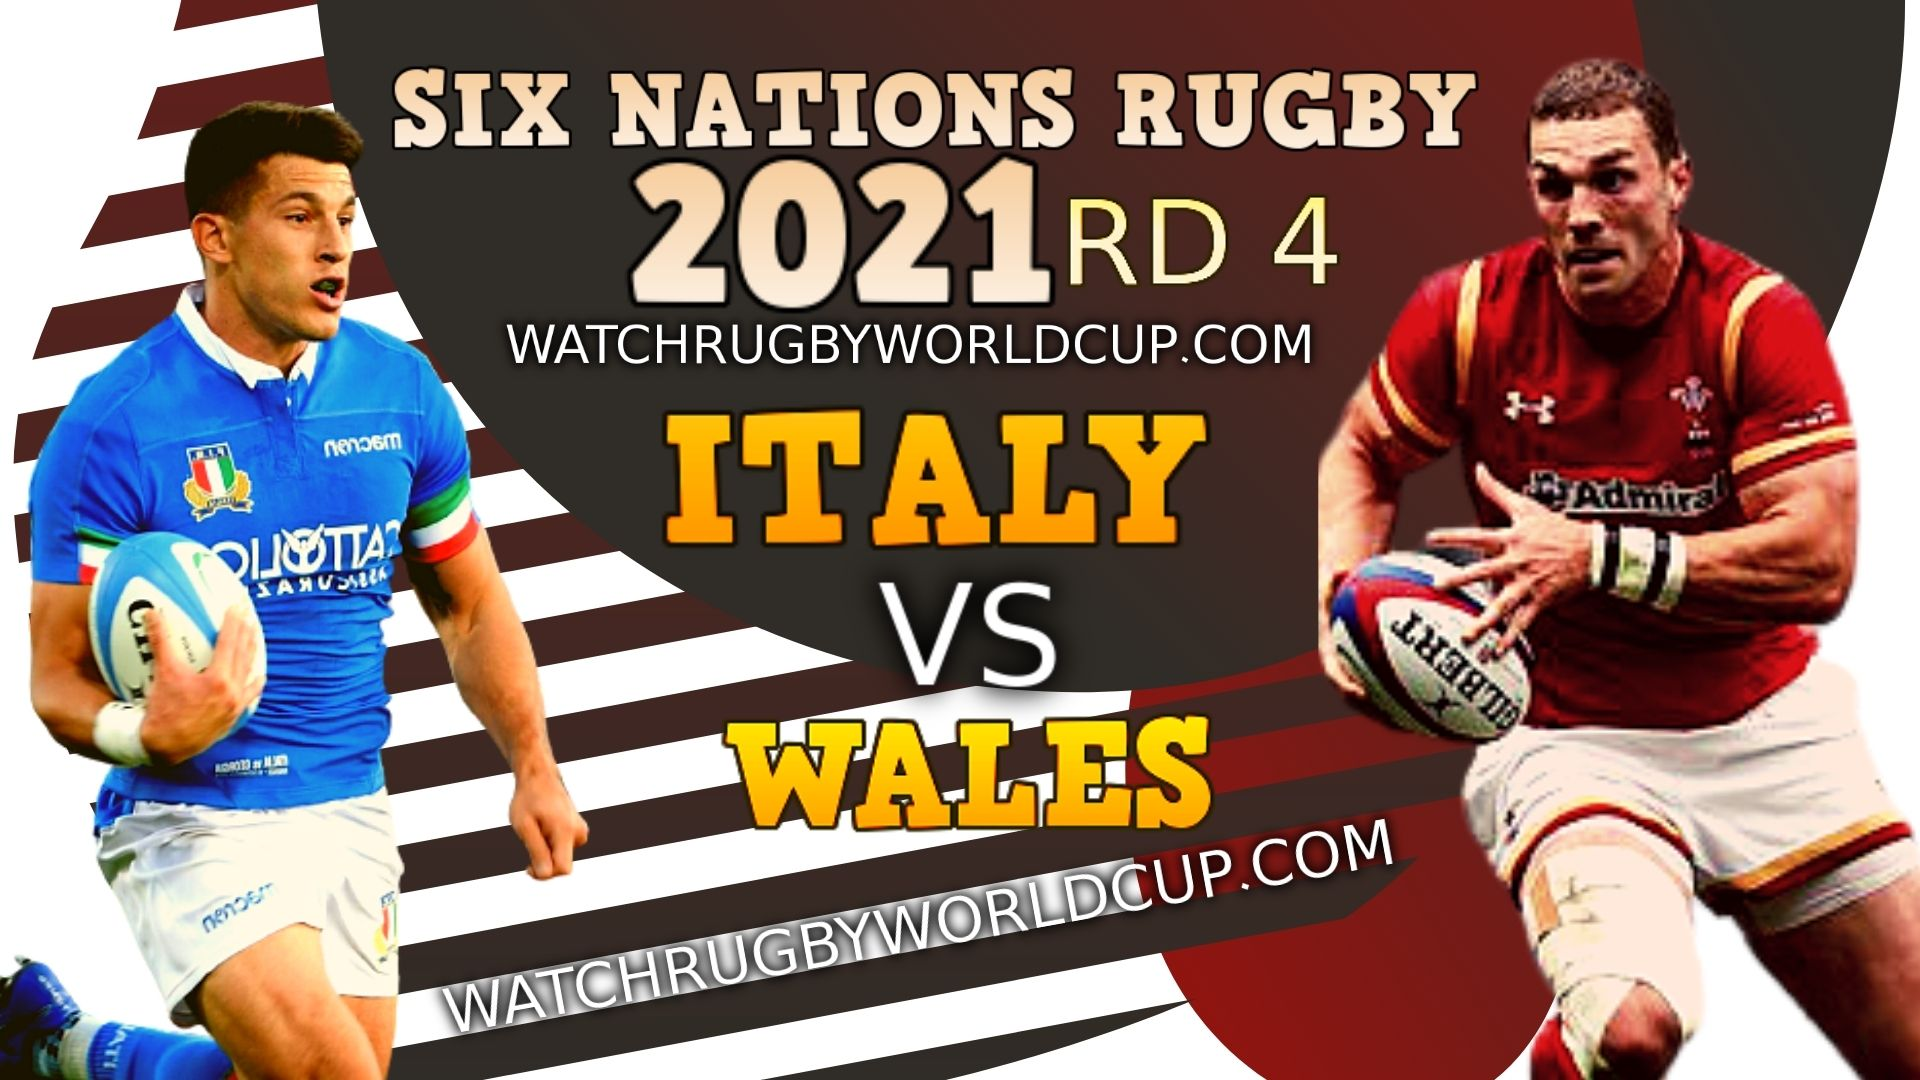 Italy vs Wales Rd 4 Live Stream 2021 & Match Replay | Six Nations Rugby slider